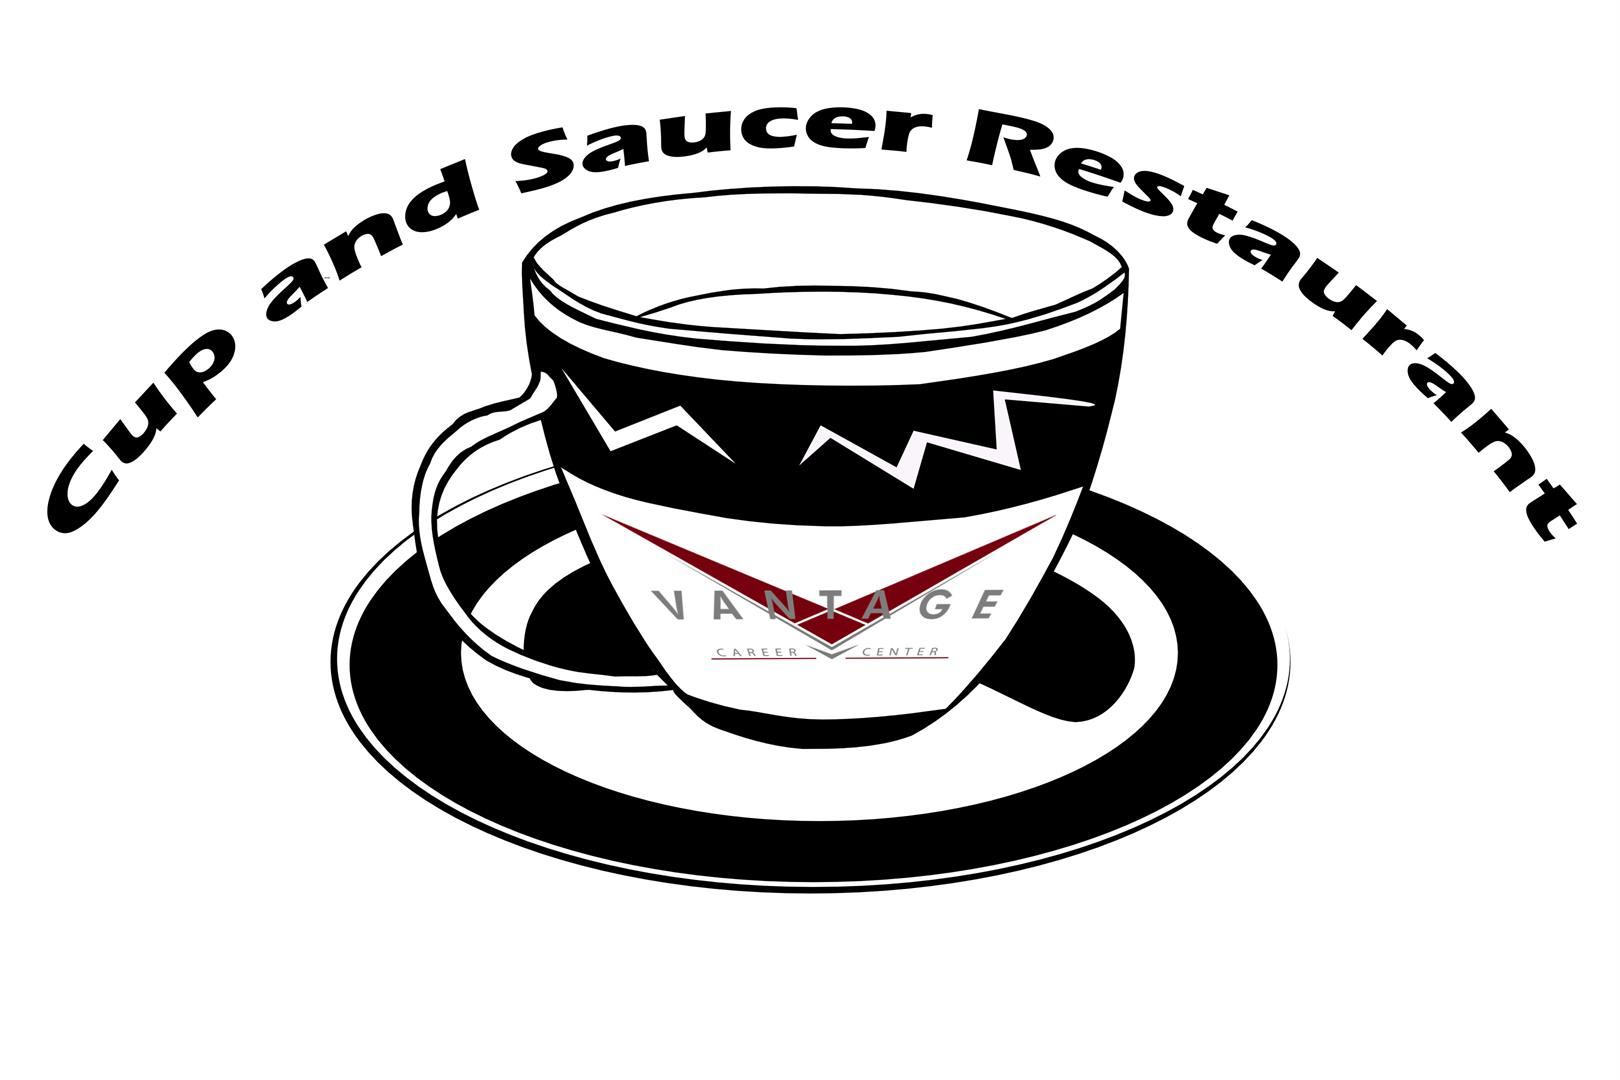 cup and saucer restaurant